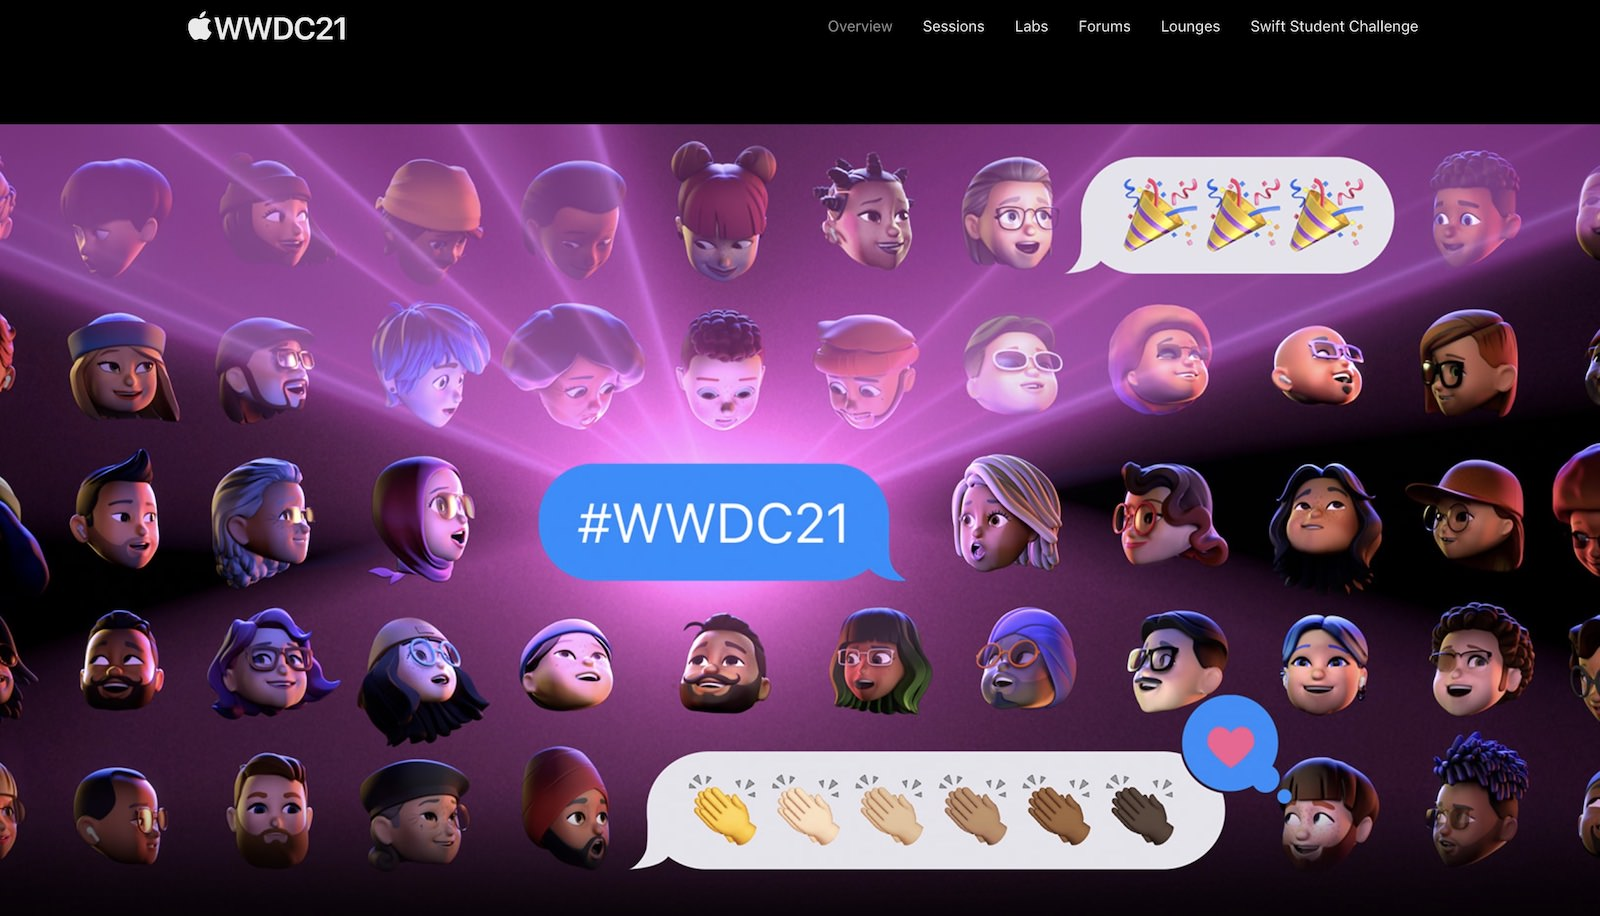 Wwdc21 official page